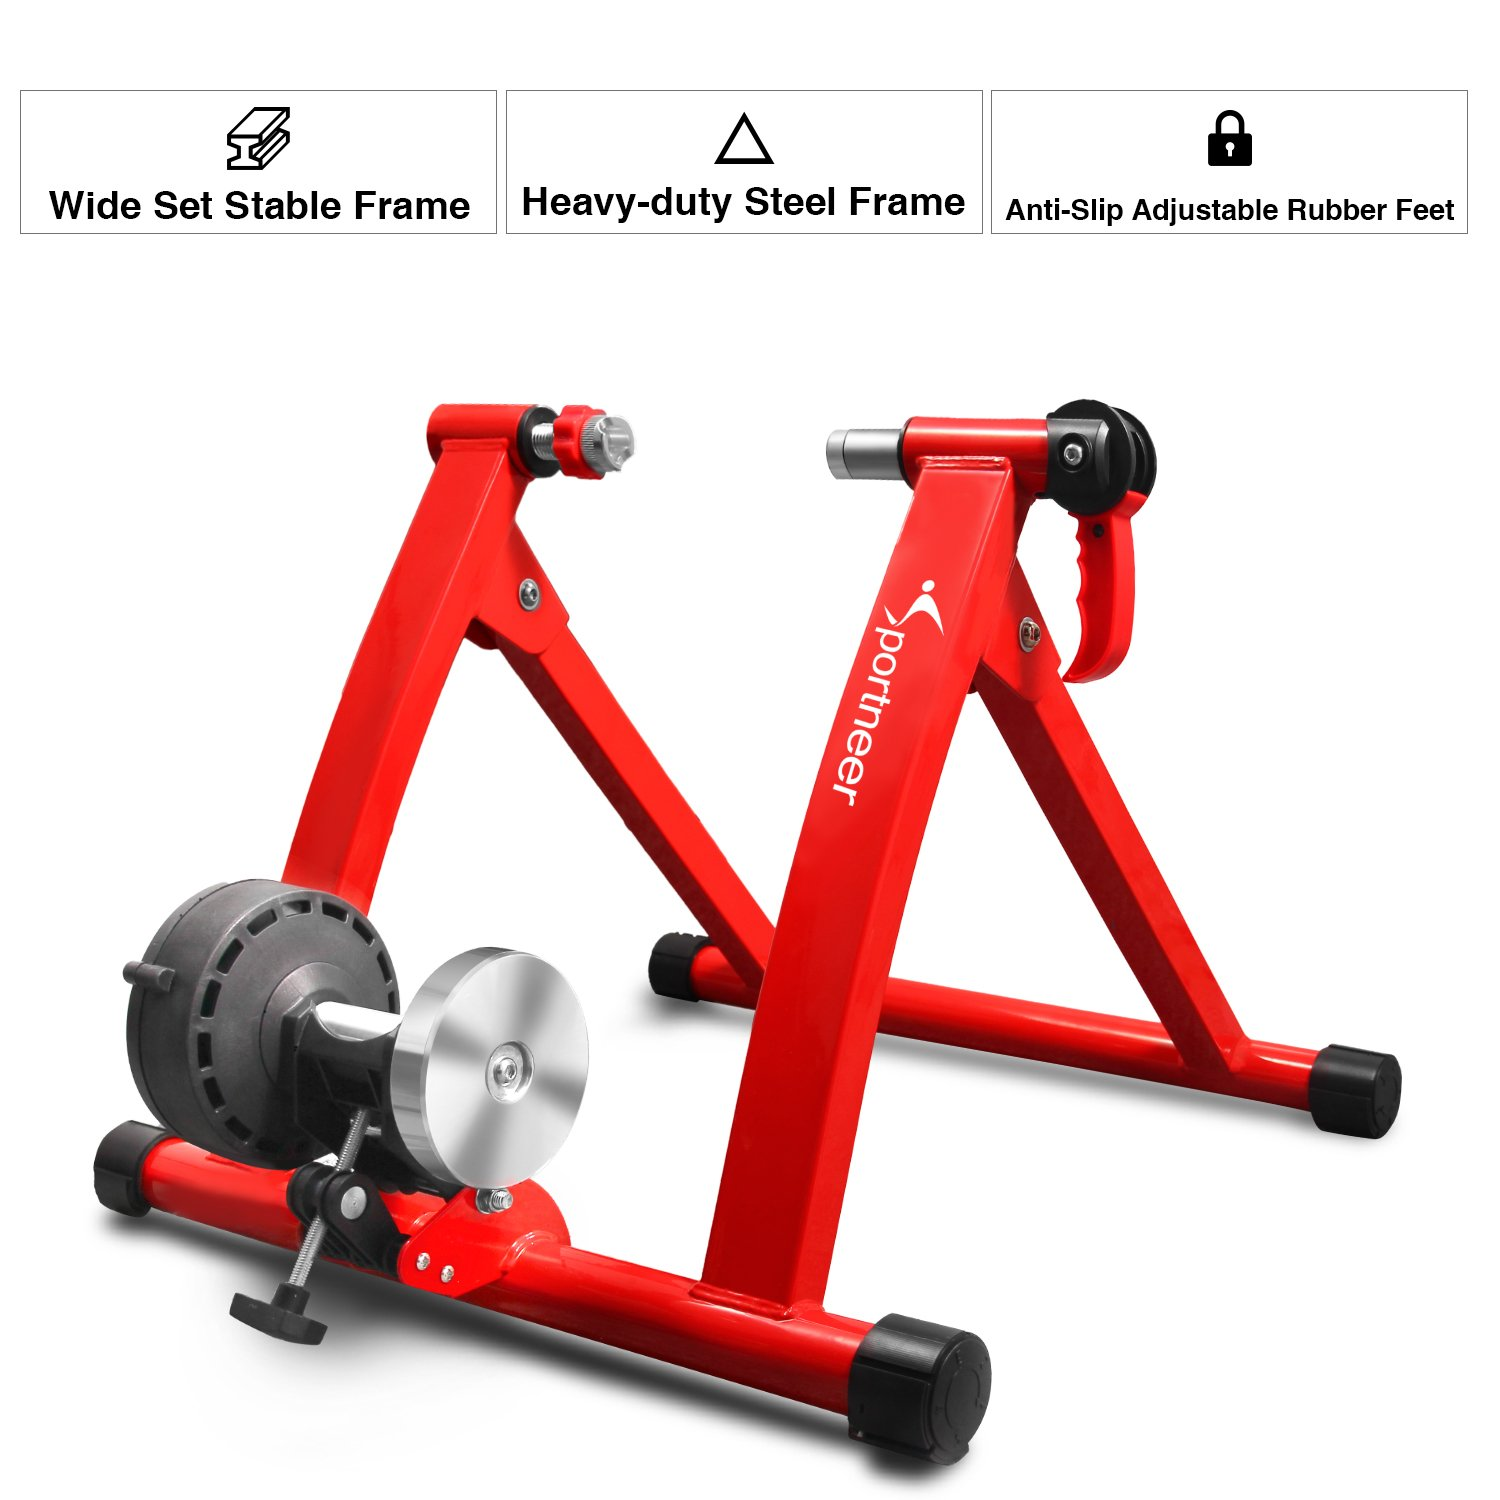 Sportneer Bike Trainer Stand Steel Bicycle Exercise Magnetic Stand with Noise Reduction Wheel, Red by Sportneer (Image #6)